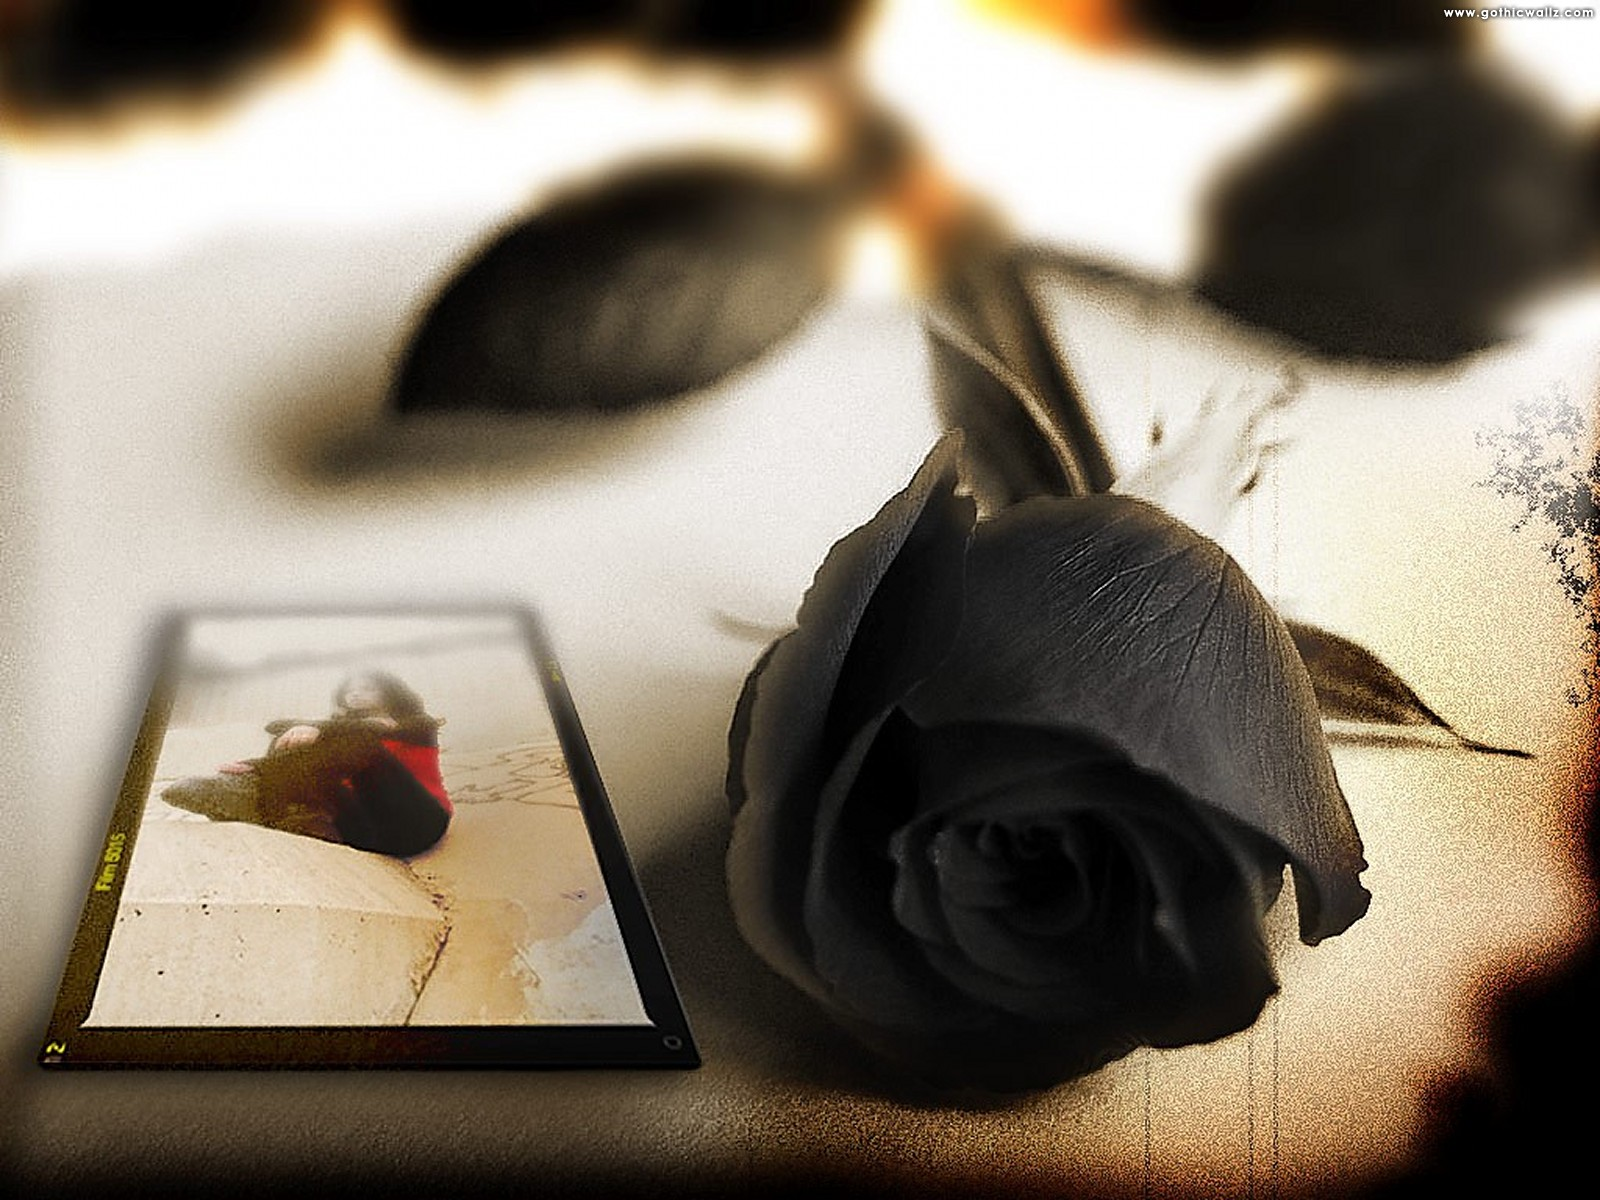 Black Rose Postcard | Dark Gothic Wallpaper Download